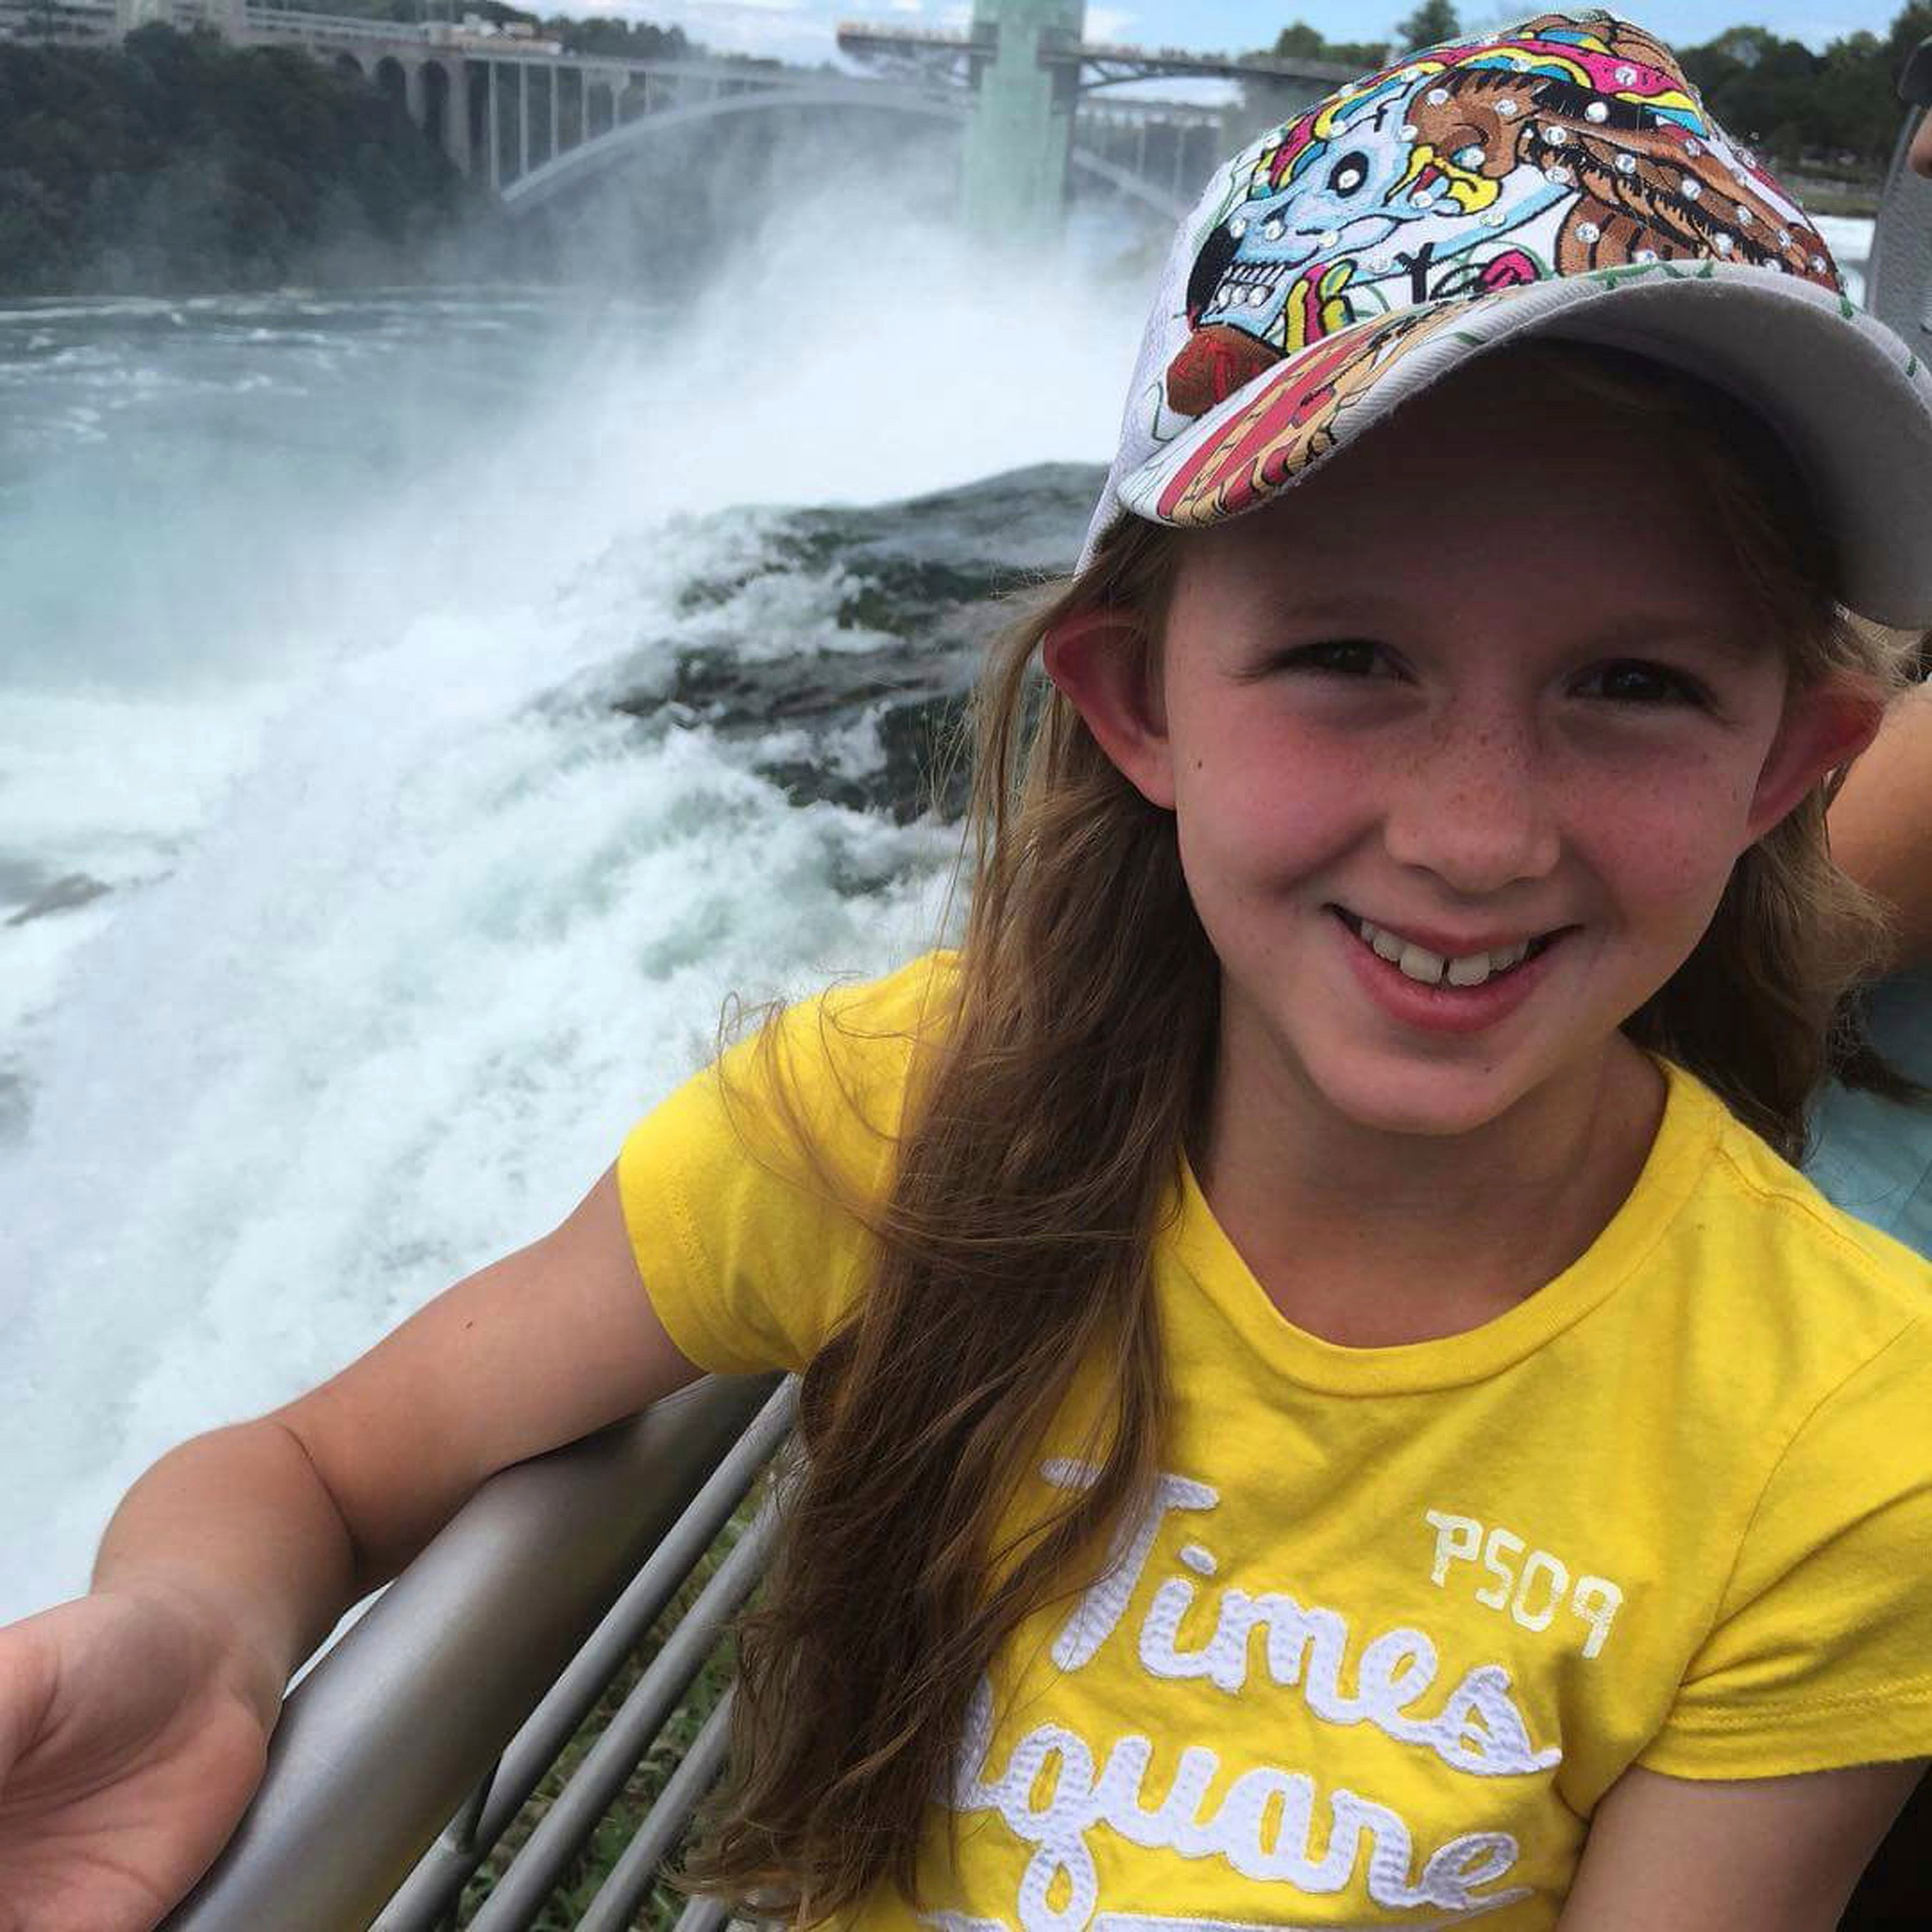 This undated photo provided by Heather Kester, shows Savannah, at Niagara Falls, N.Y., whose mother requested only her first name be used. (Heather Kester via AP)